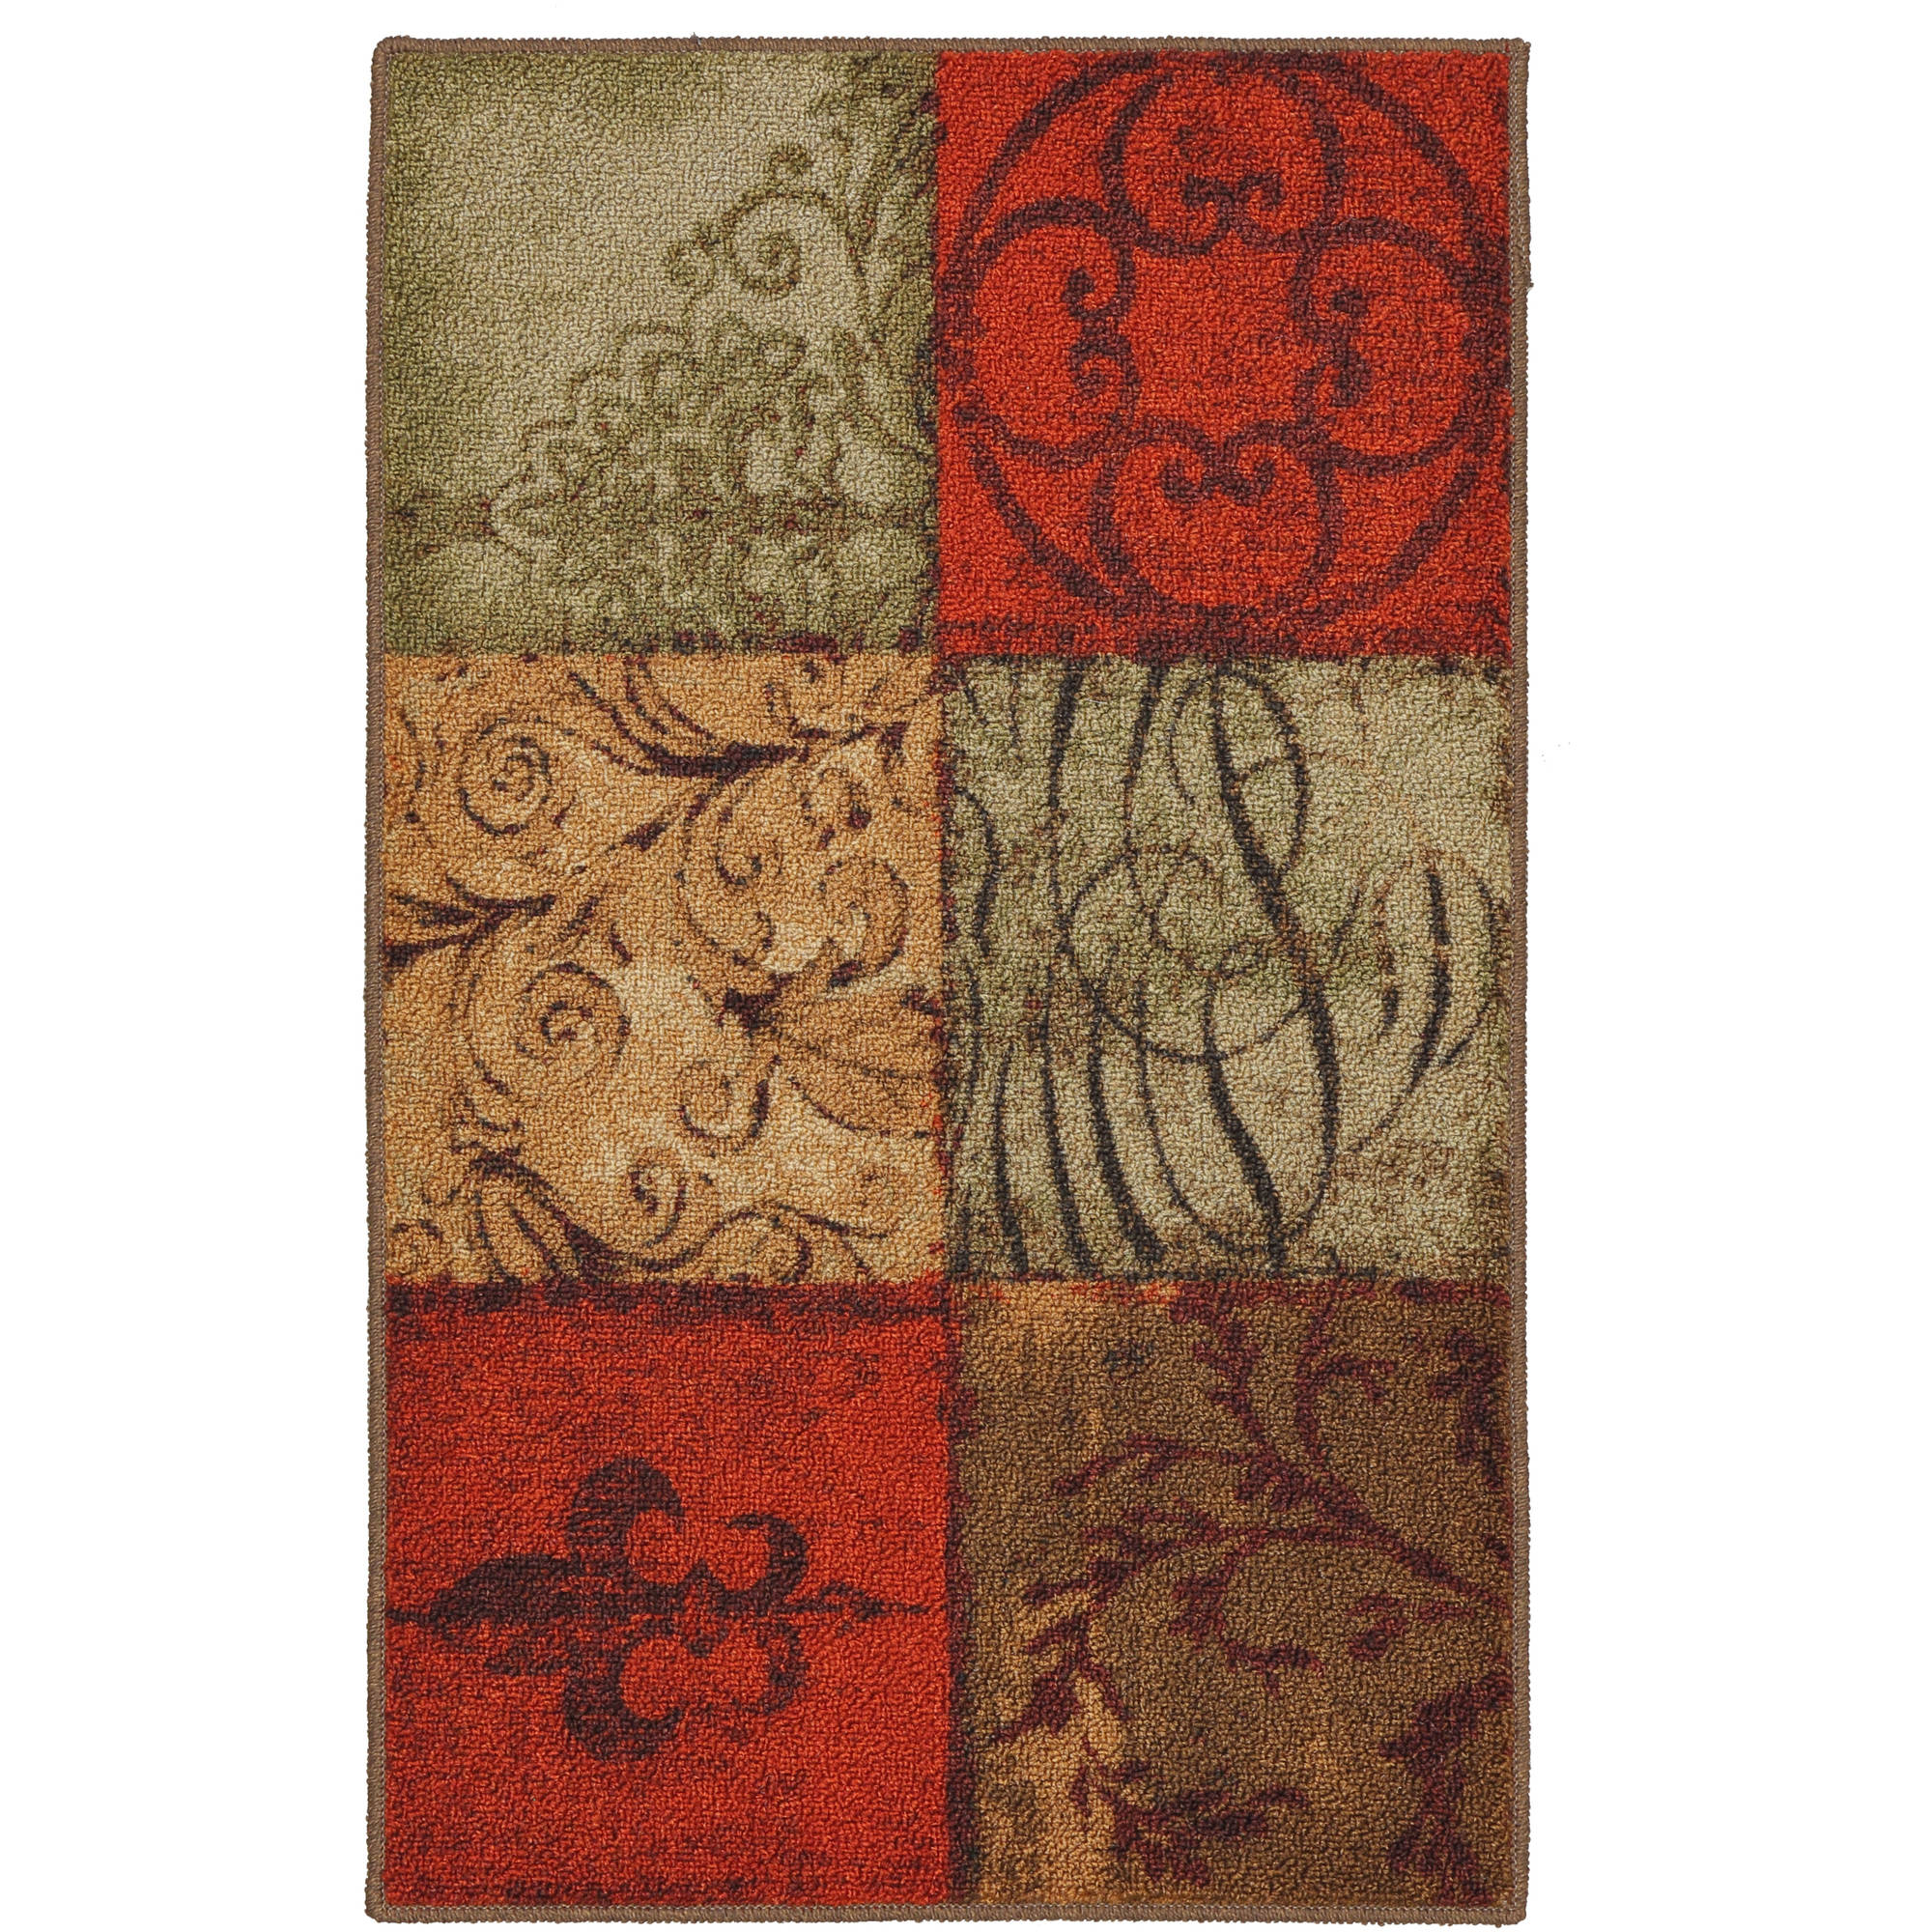 walmart kitchen rugs kitchen floor mats walmart Mohawk Home Tuscany Kitchen Rug Walmart com